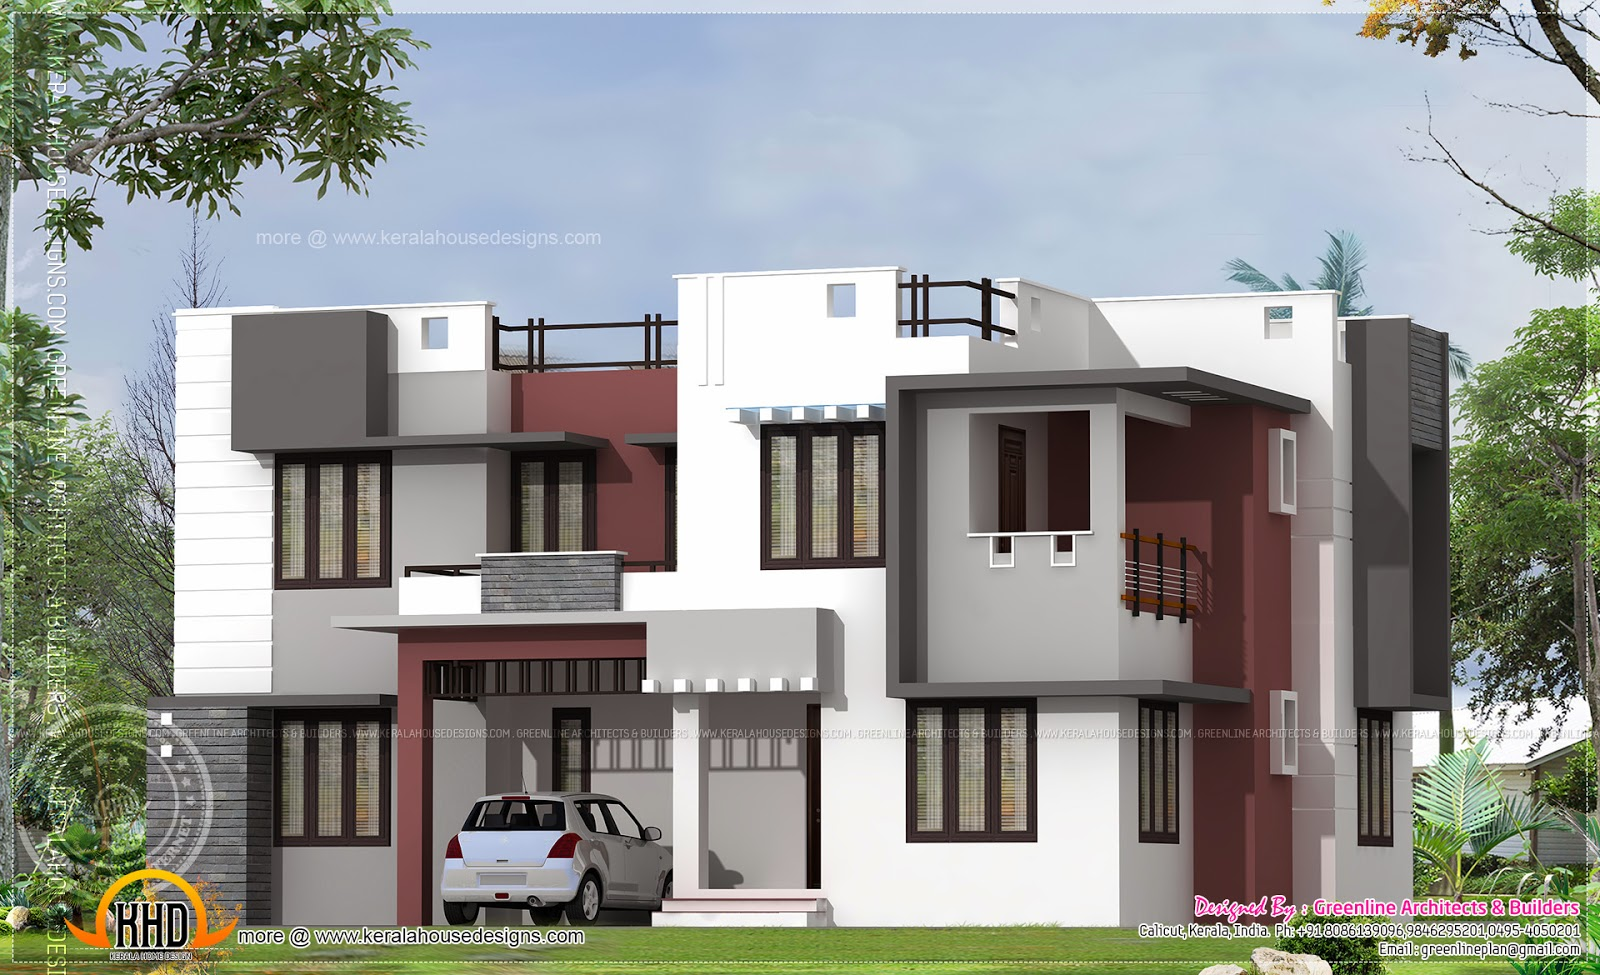 2160 square feet modern flat roof home exterior kerala home design and floor plans - Houses atticsquare meters ...